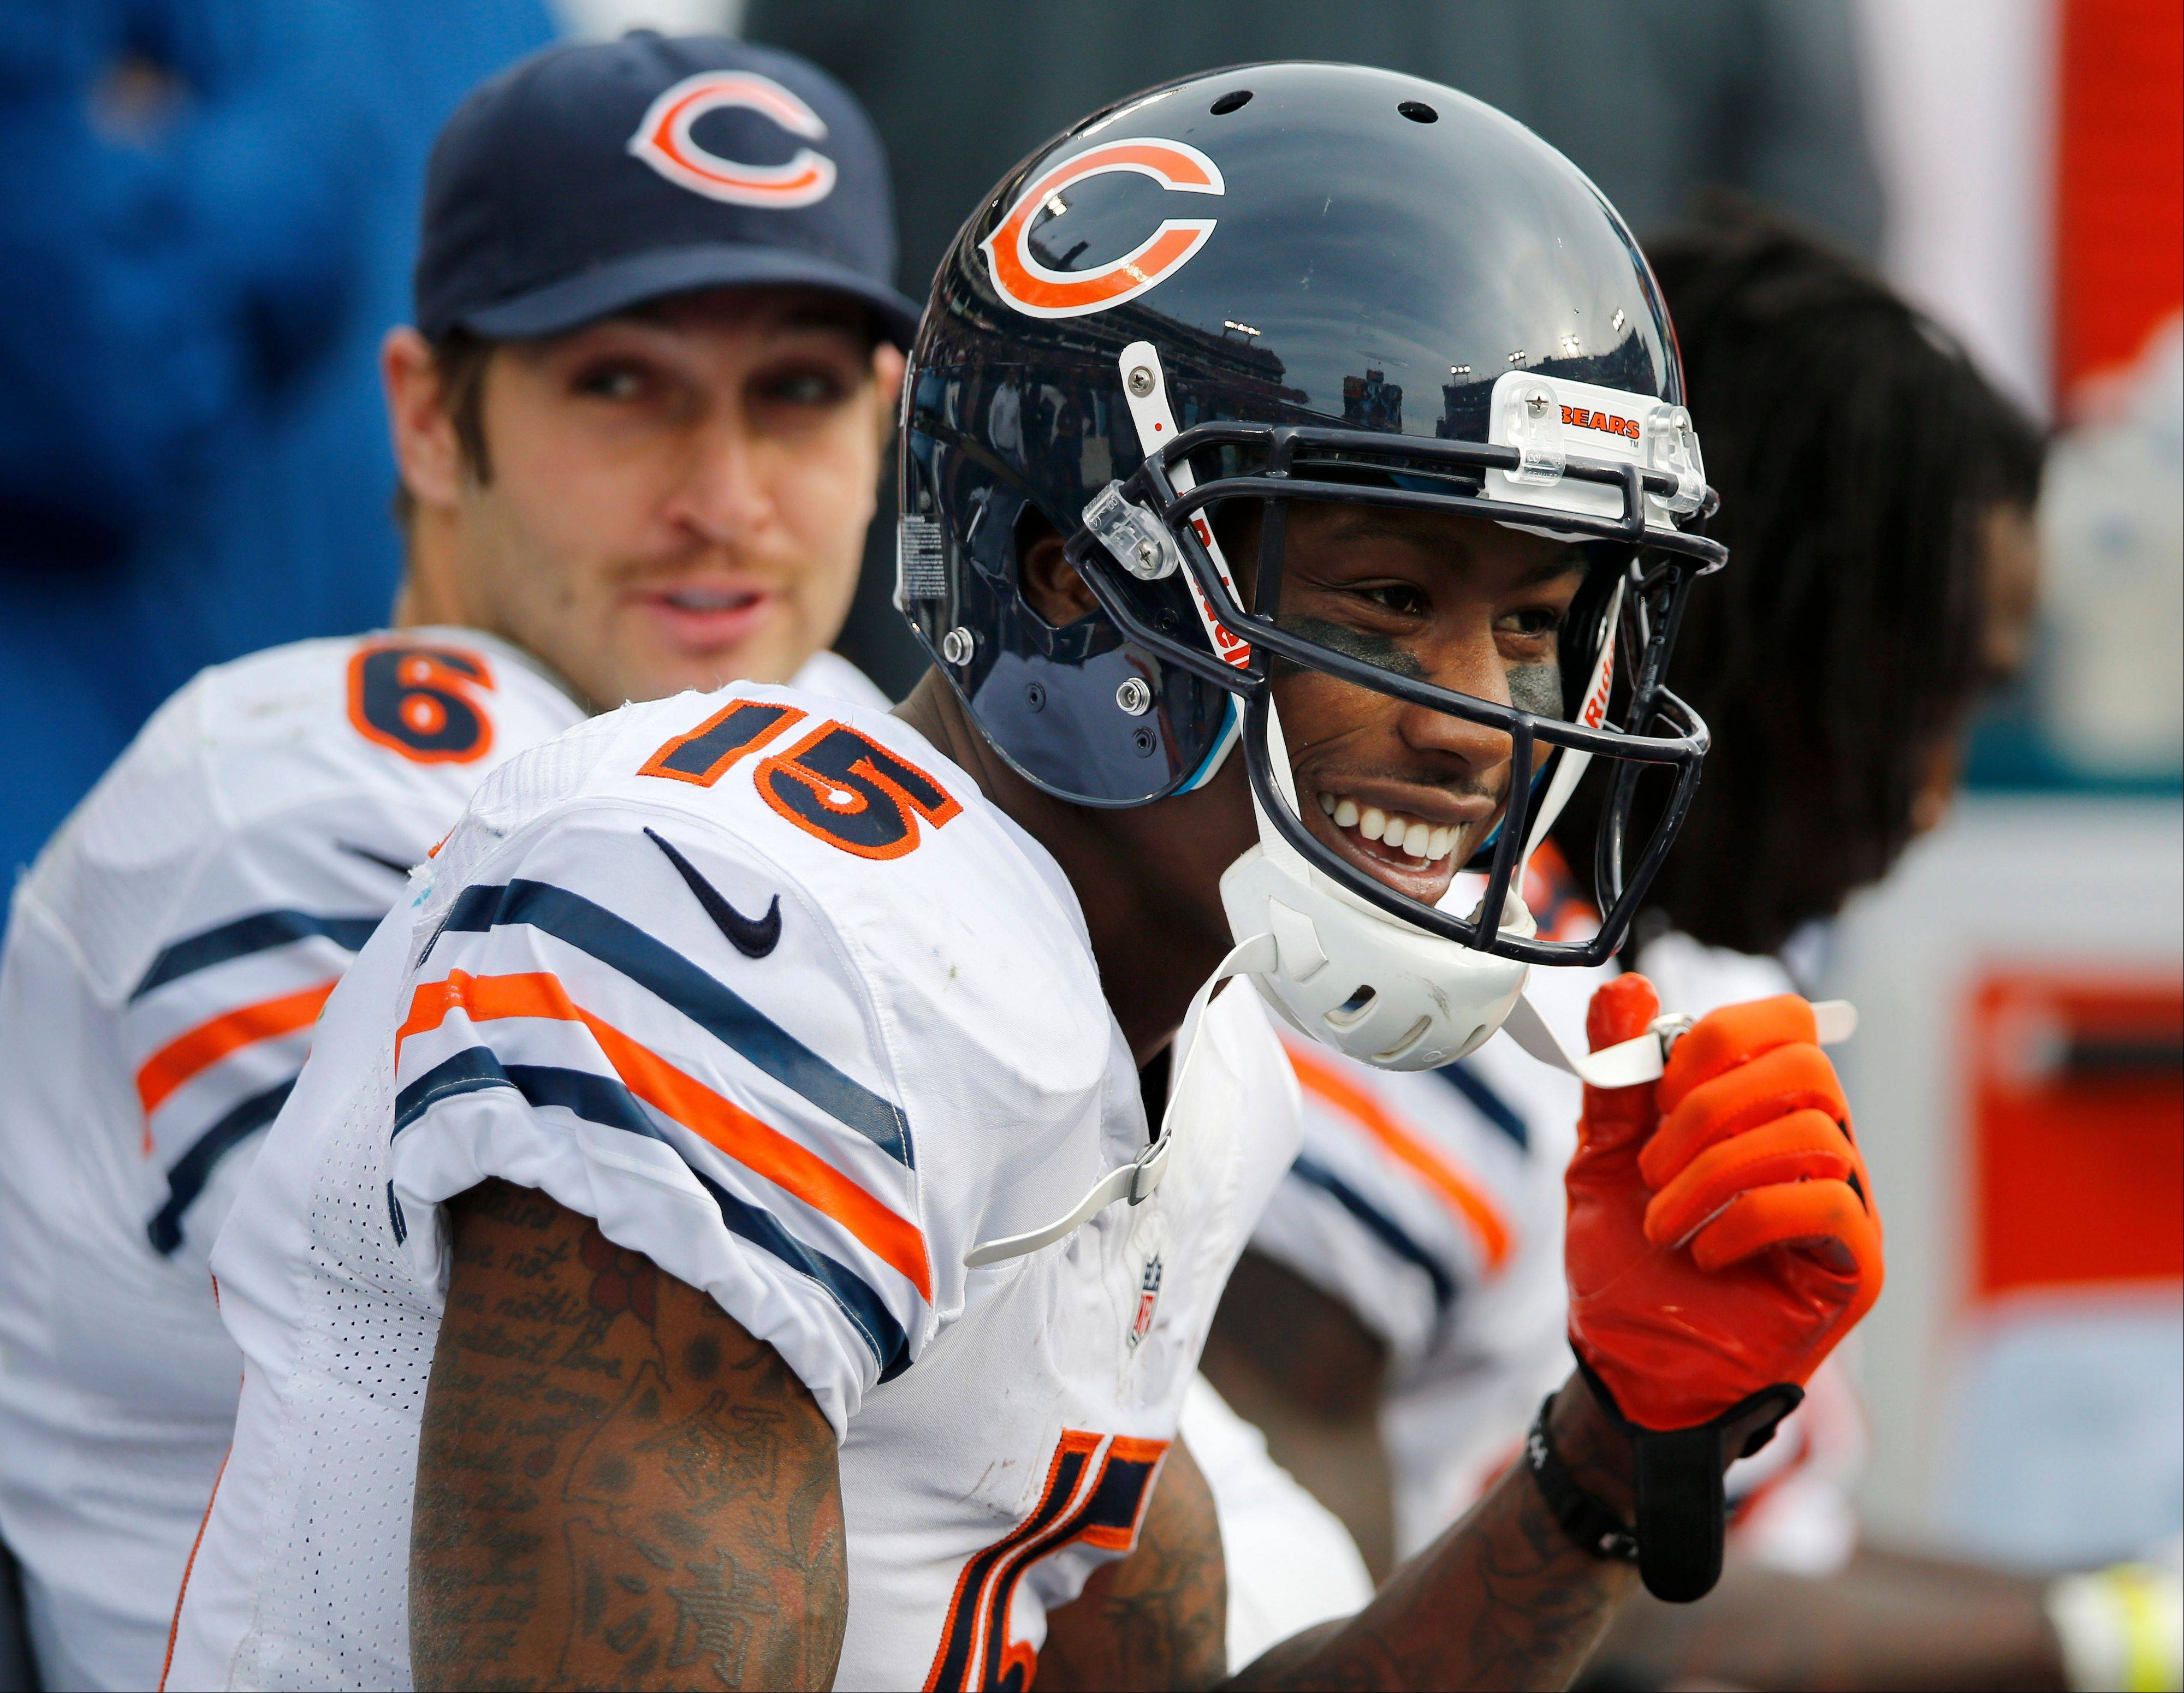 Chicago Bears wide receiver Brandon Marshall (15) and quarterback Jay Cutler (6)take a break on the bench after Cutler threw a touchdown pass to Marshall against the Tennessee Titans in the fourth quarter of an NFL football game on Sunday, Nov. 4, 2012, in Nashville, Tenn. Marshall caught three touchdown passes from Cutler as the Bears beat the Titans 51-20.